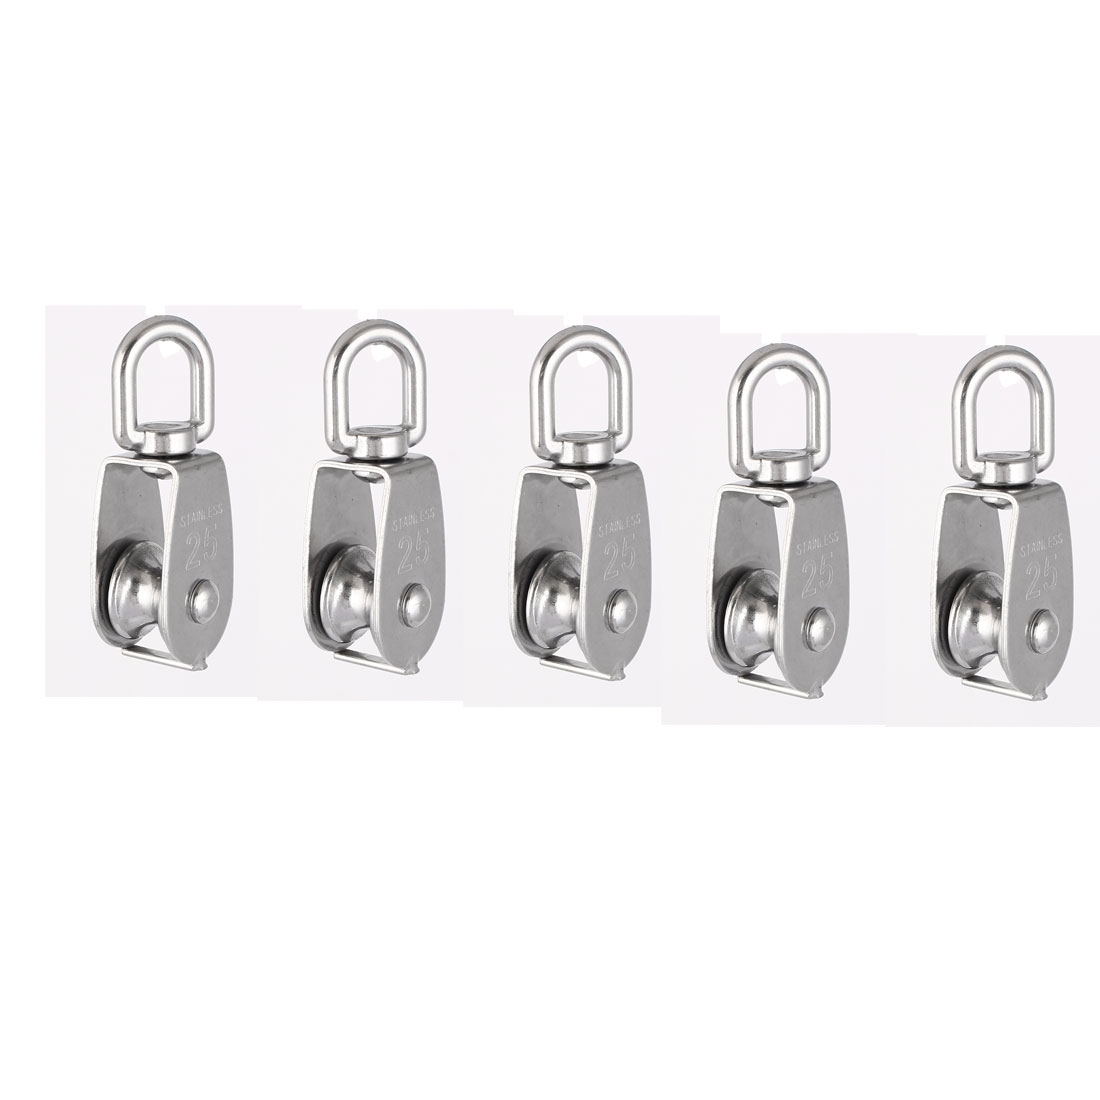 M25 Lifting Crane Swivel Hook Single Pulley Block Hanging Wire Towing Wheel 5pcs